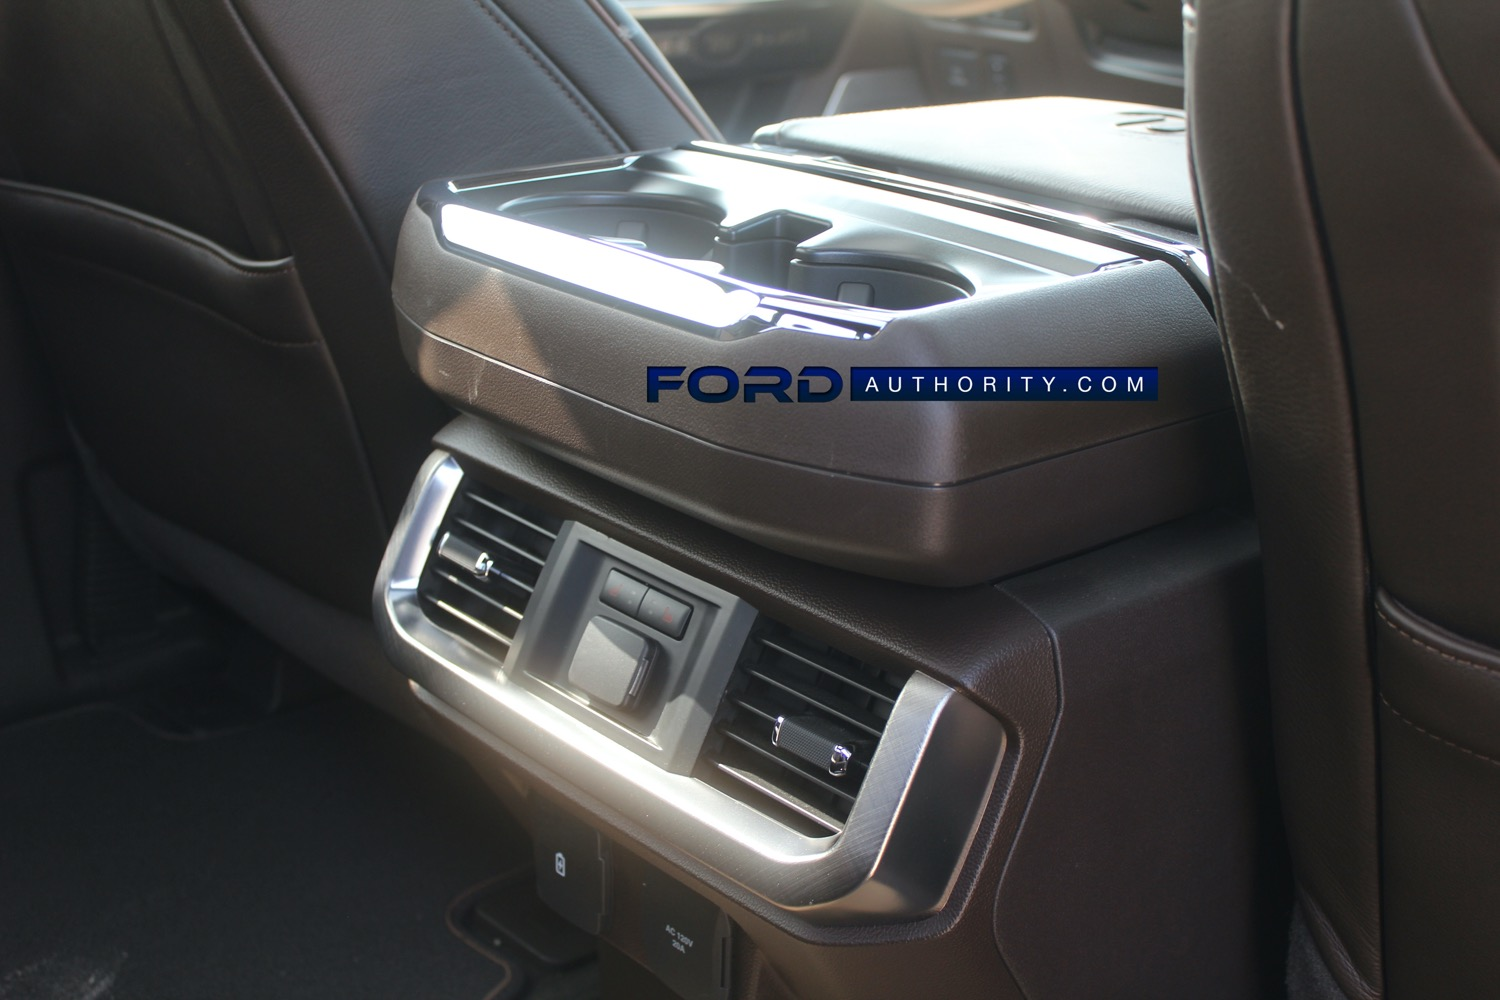 2021-Ford-F-150-King-Ranch-Interior-Second-Row-004-center-console-AC-vents-heated-seat-control...jpg